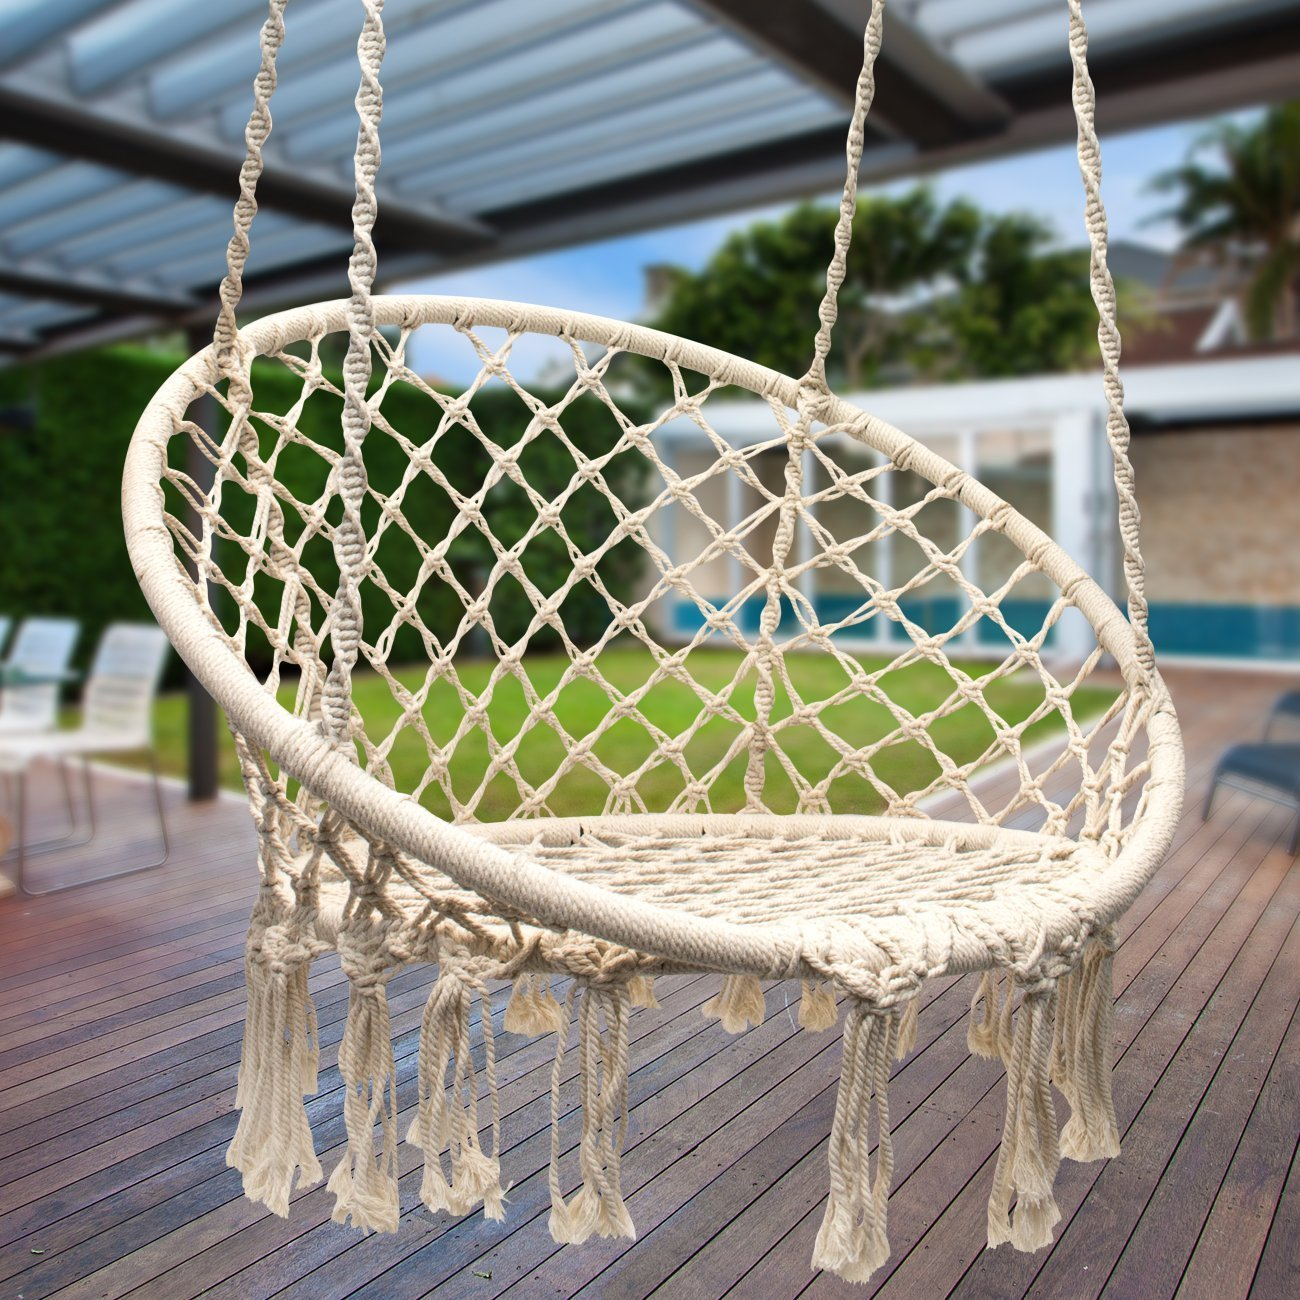 How To Make A Hammock Chair Diy Hanging Macrame Chair